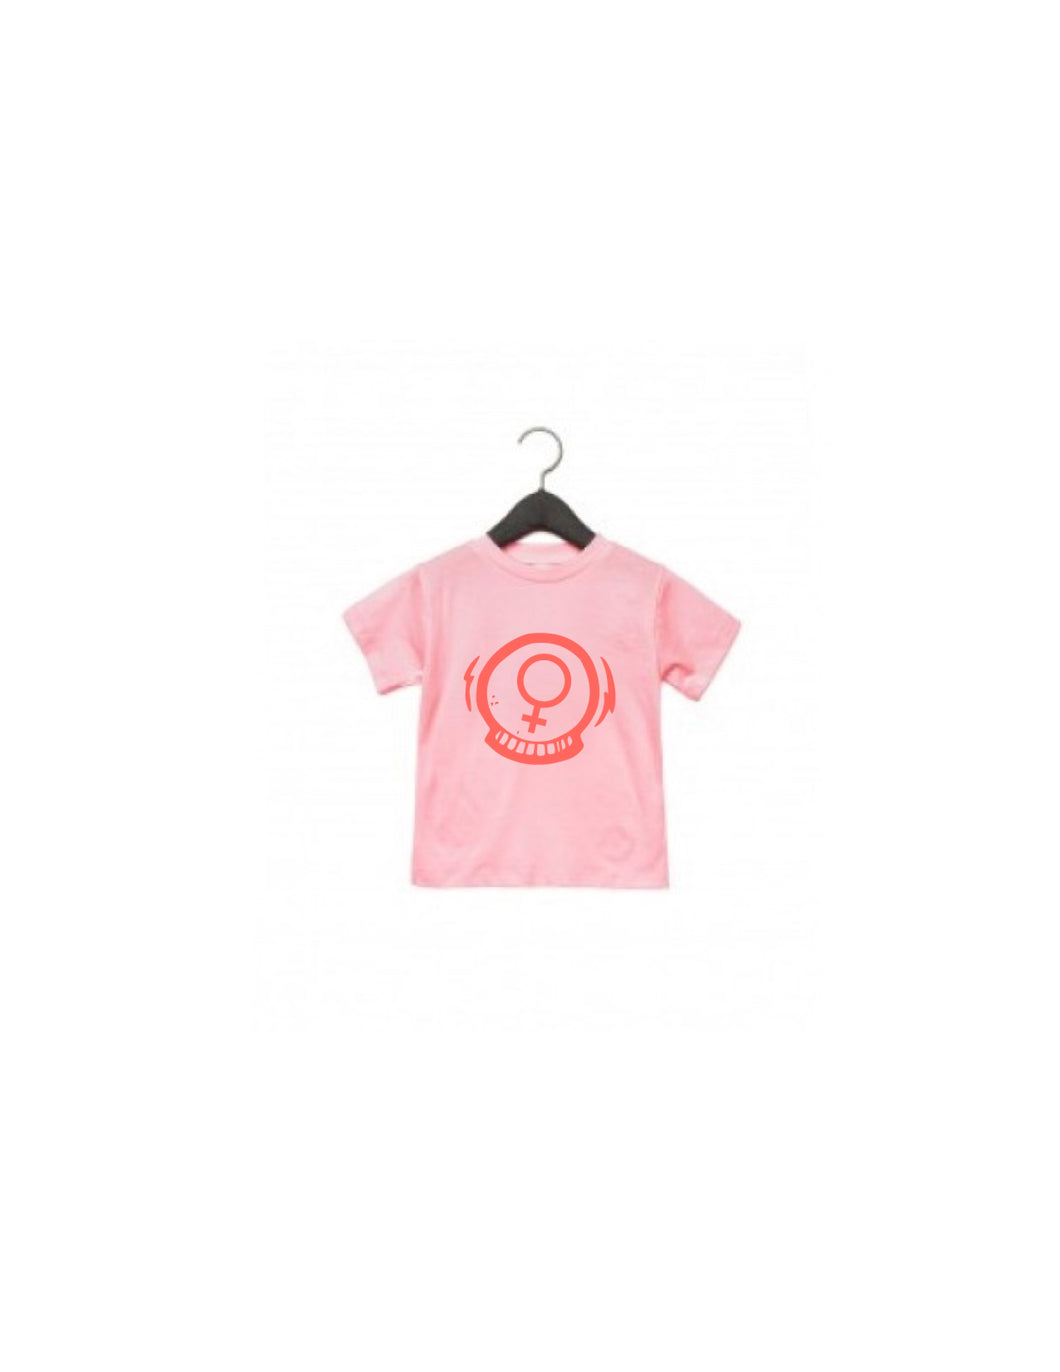 Toddler the Future is Female limited release tees